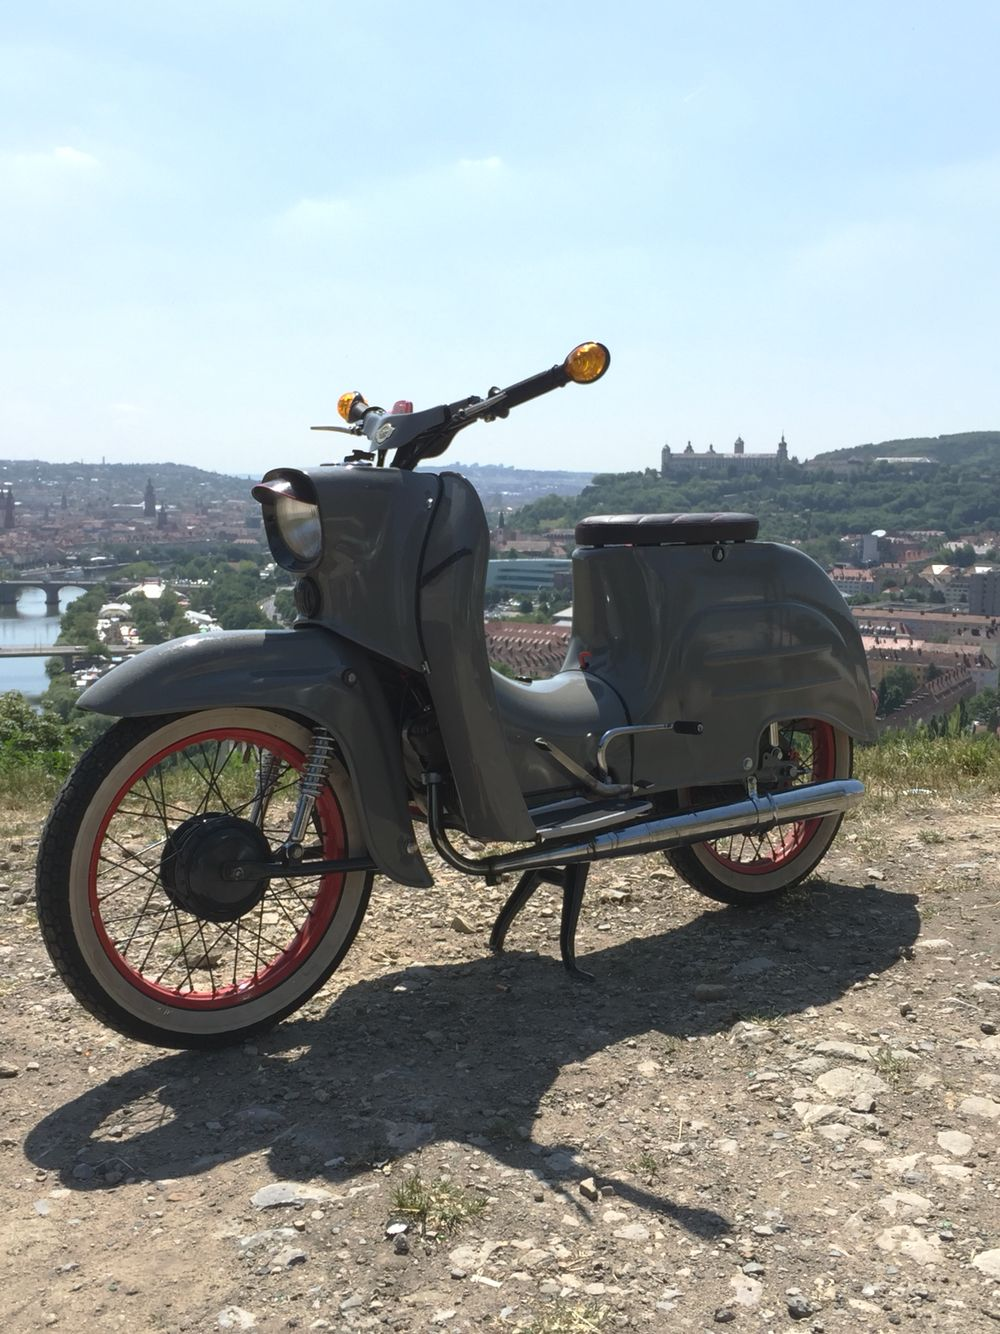 die besten 25 schwalbe moped ideen auf pinterest motorroller simson moped und schwalbe. Black Bedroom Furniture Sets. Home Design Ideas